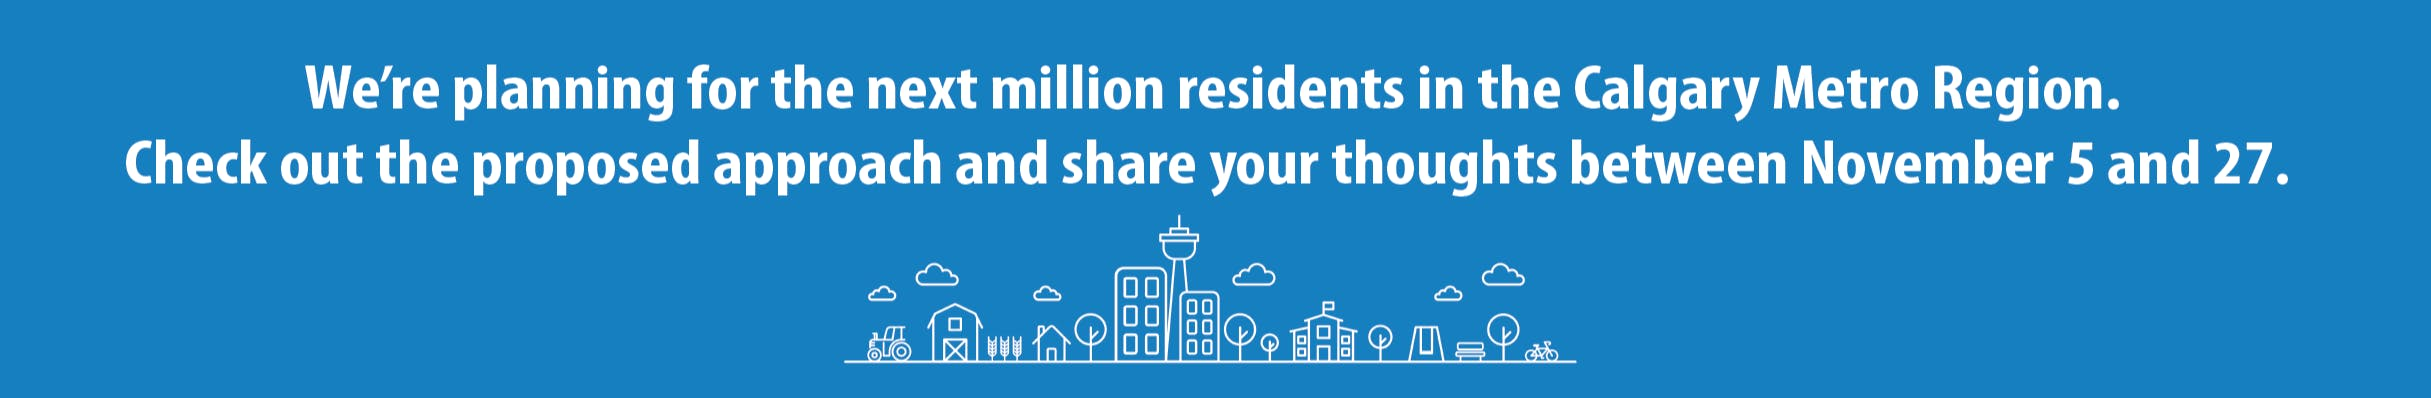 Thank you for your feedback!  Visit calgarymetroregion.ca to subscribe for updates.  More opportunities to have your say on the Regional Growth Plan coming this fall.